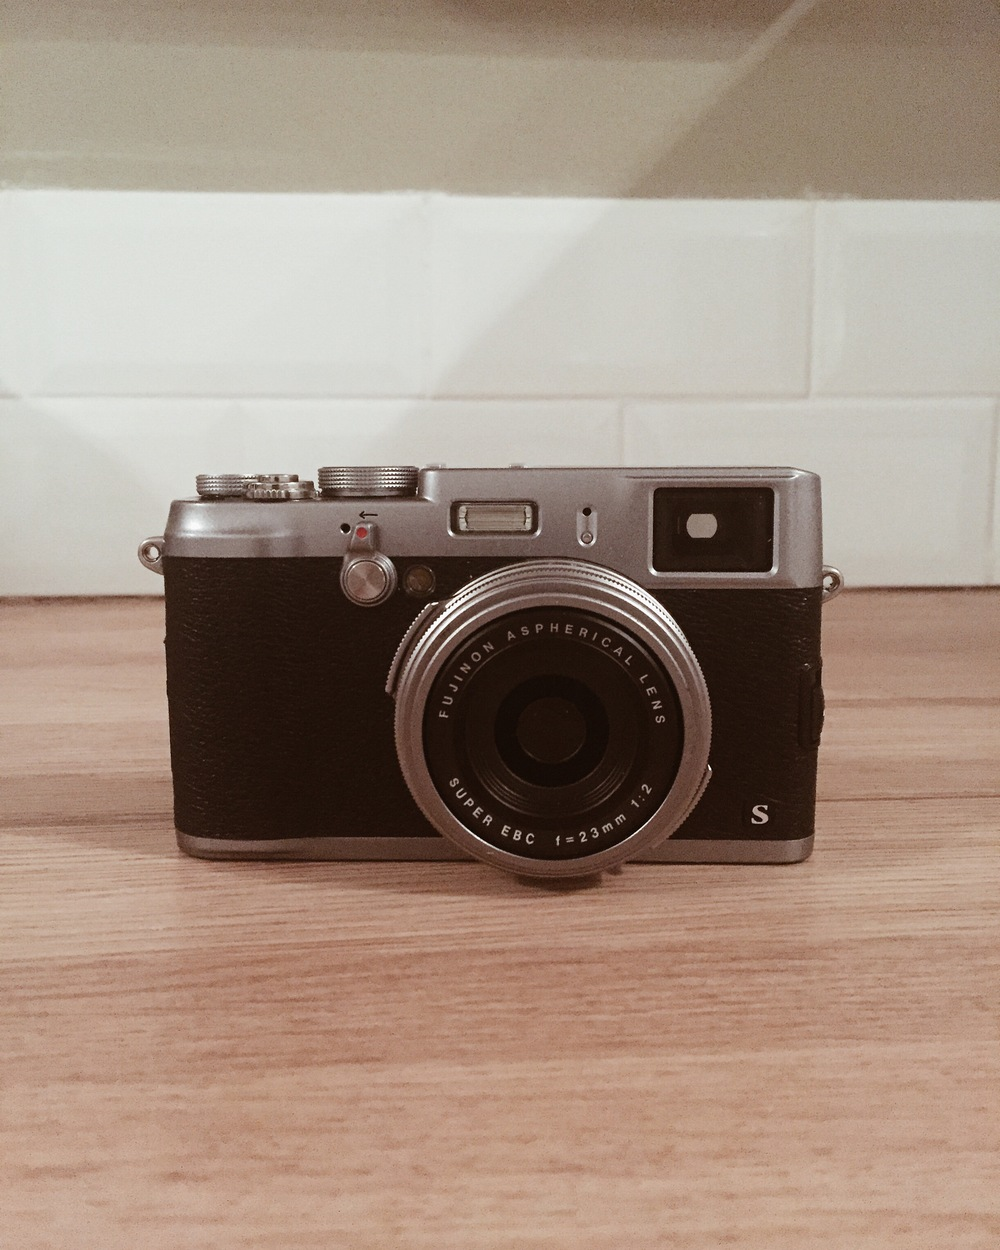 My new (used) Fuji X100S. SO PRETTY.